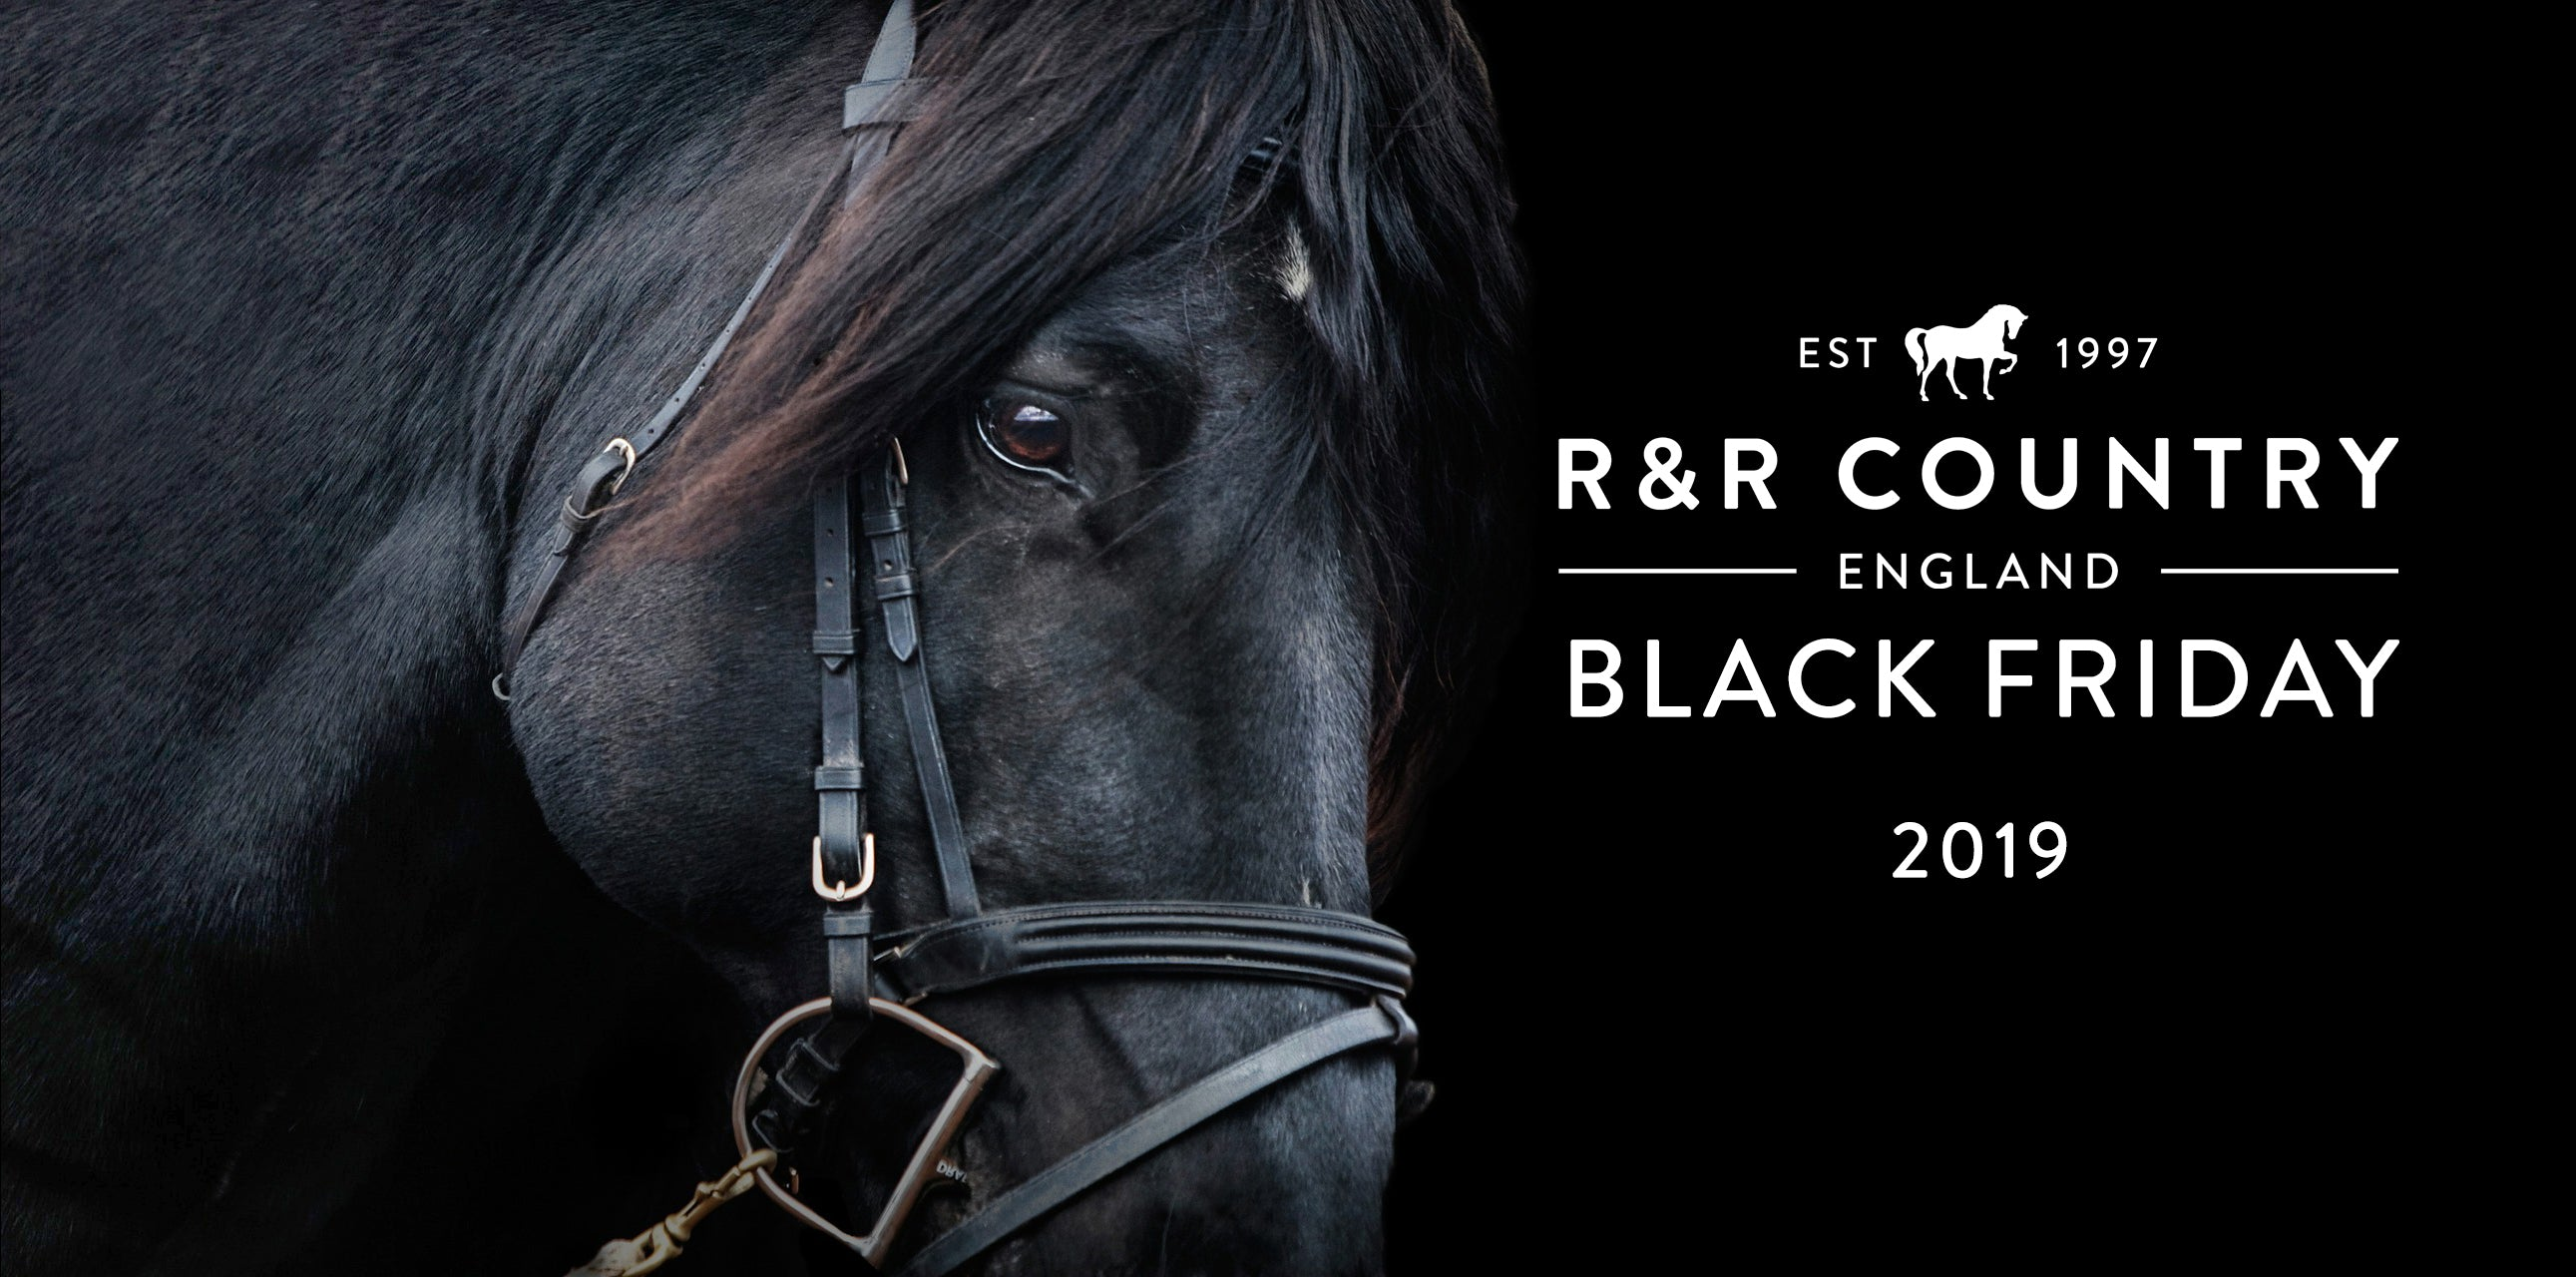 black friday 2019 black horse R&R country black friday bridle discounts sales